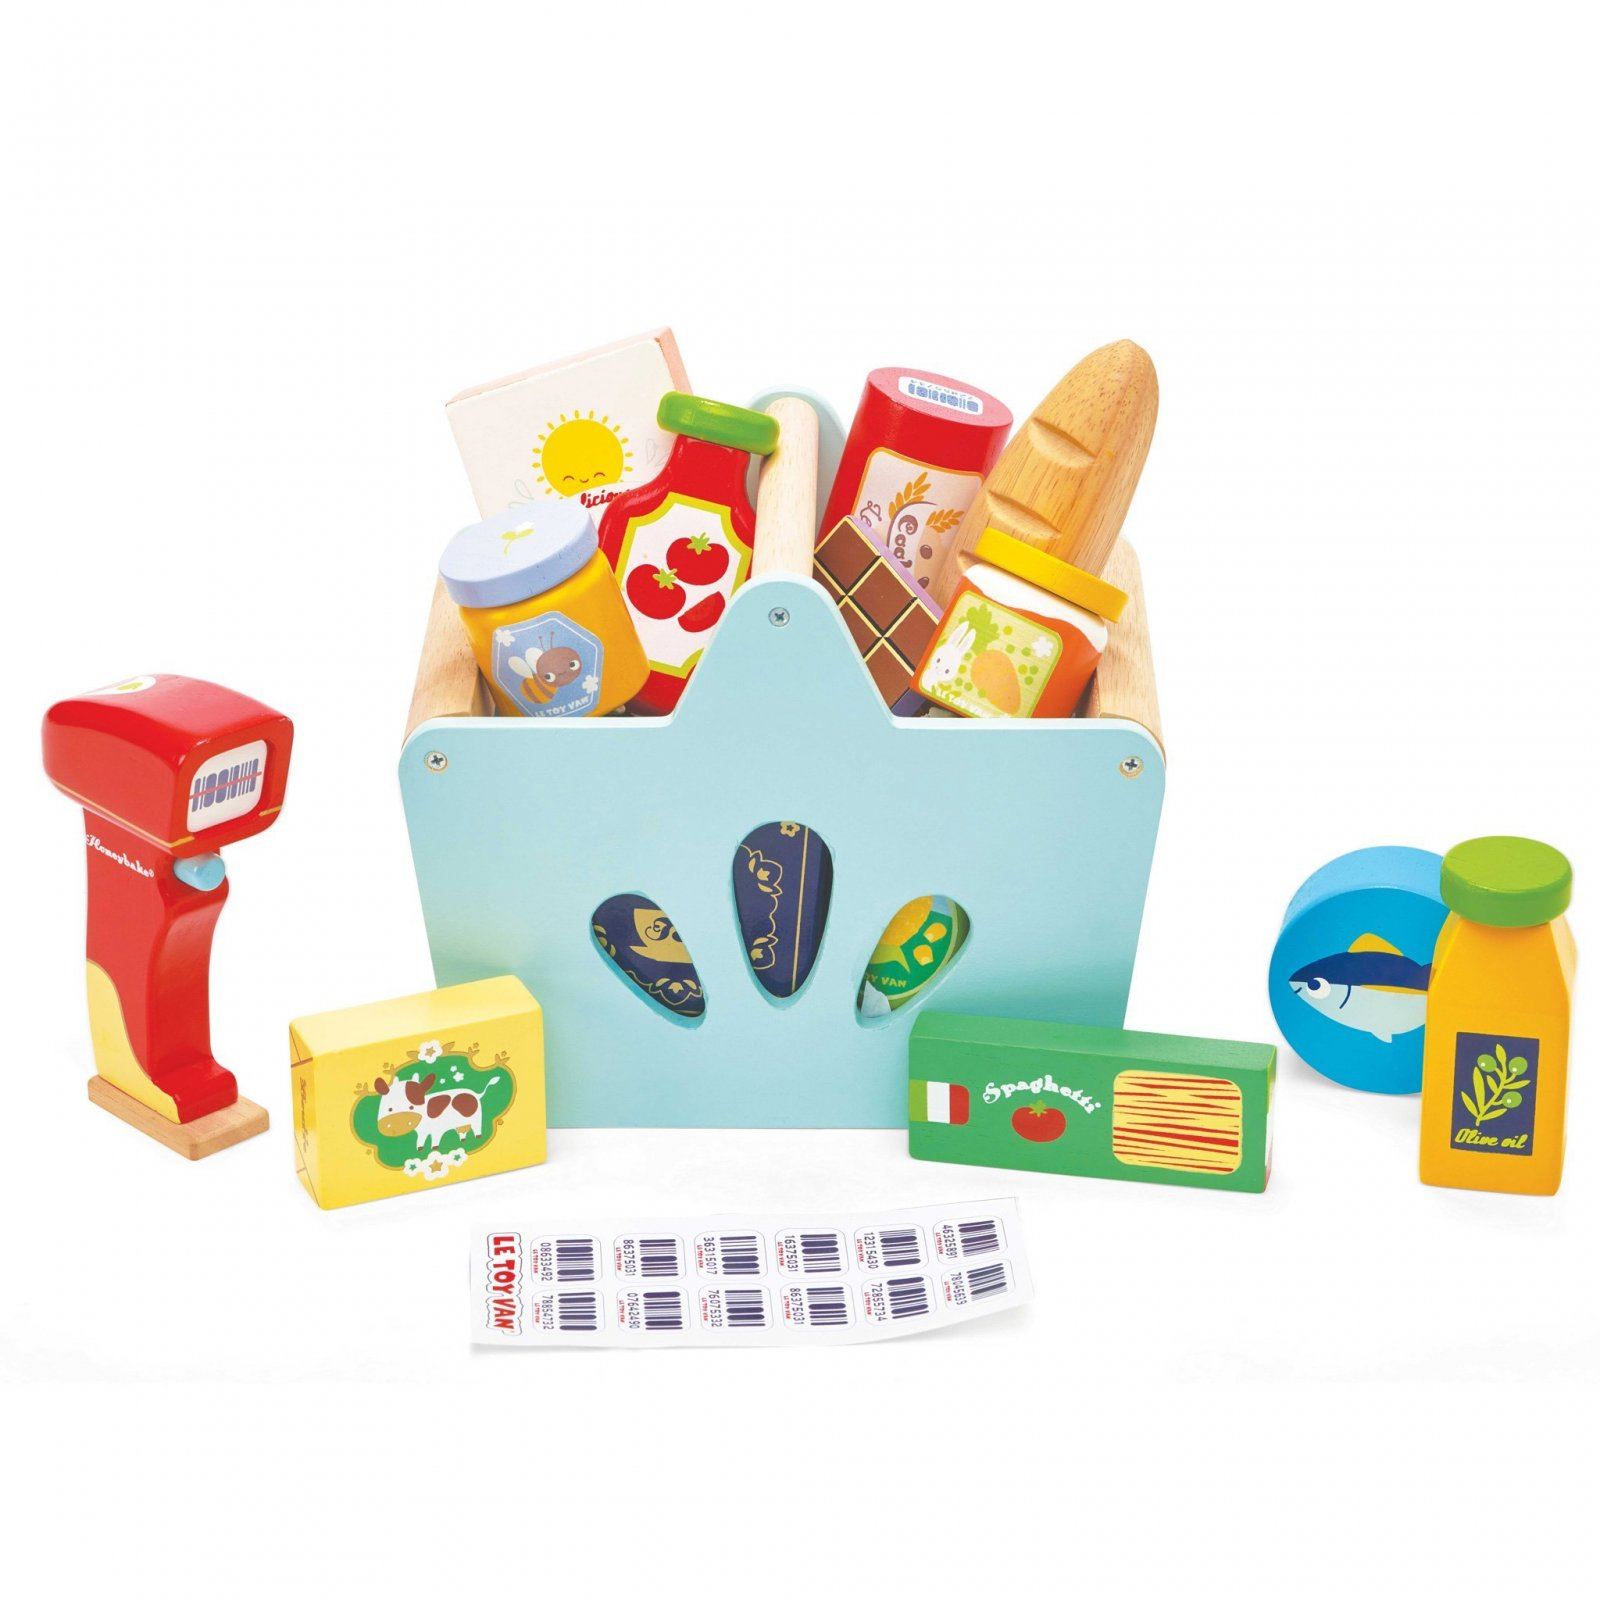 Grocery Set and Scanner by Le Toy Van